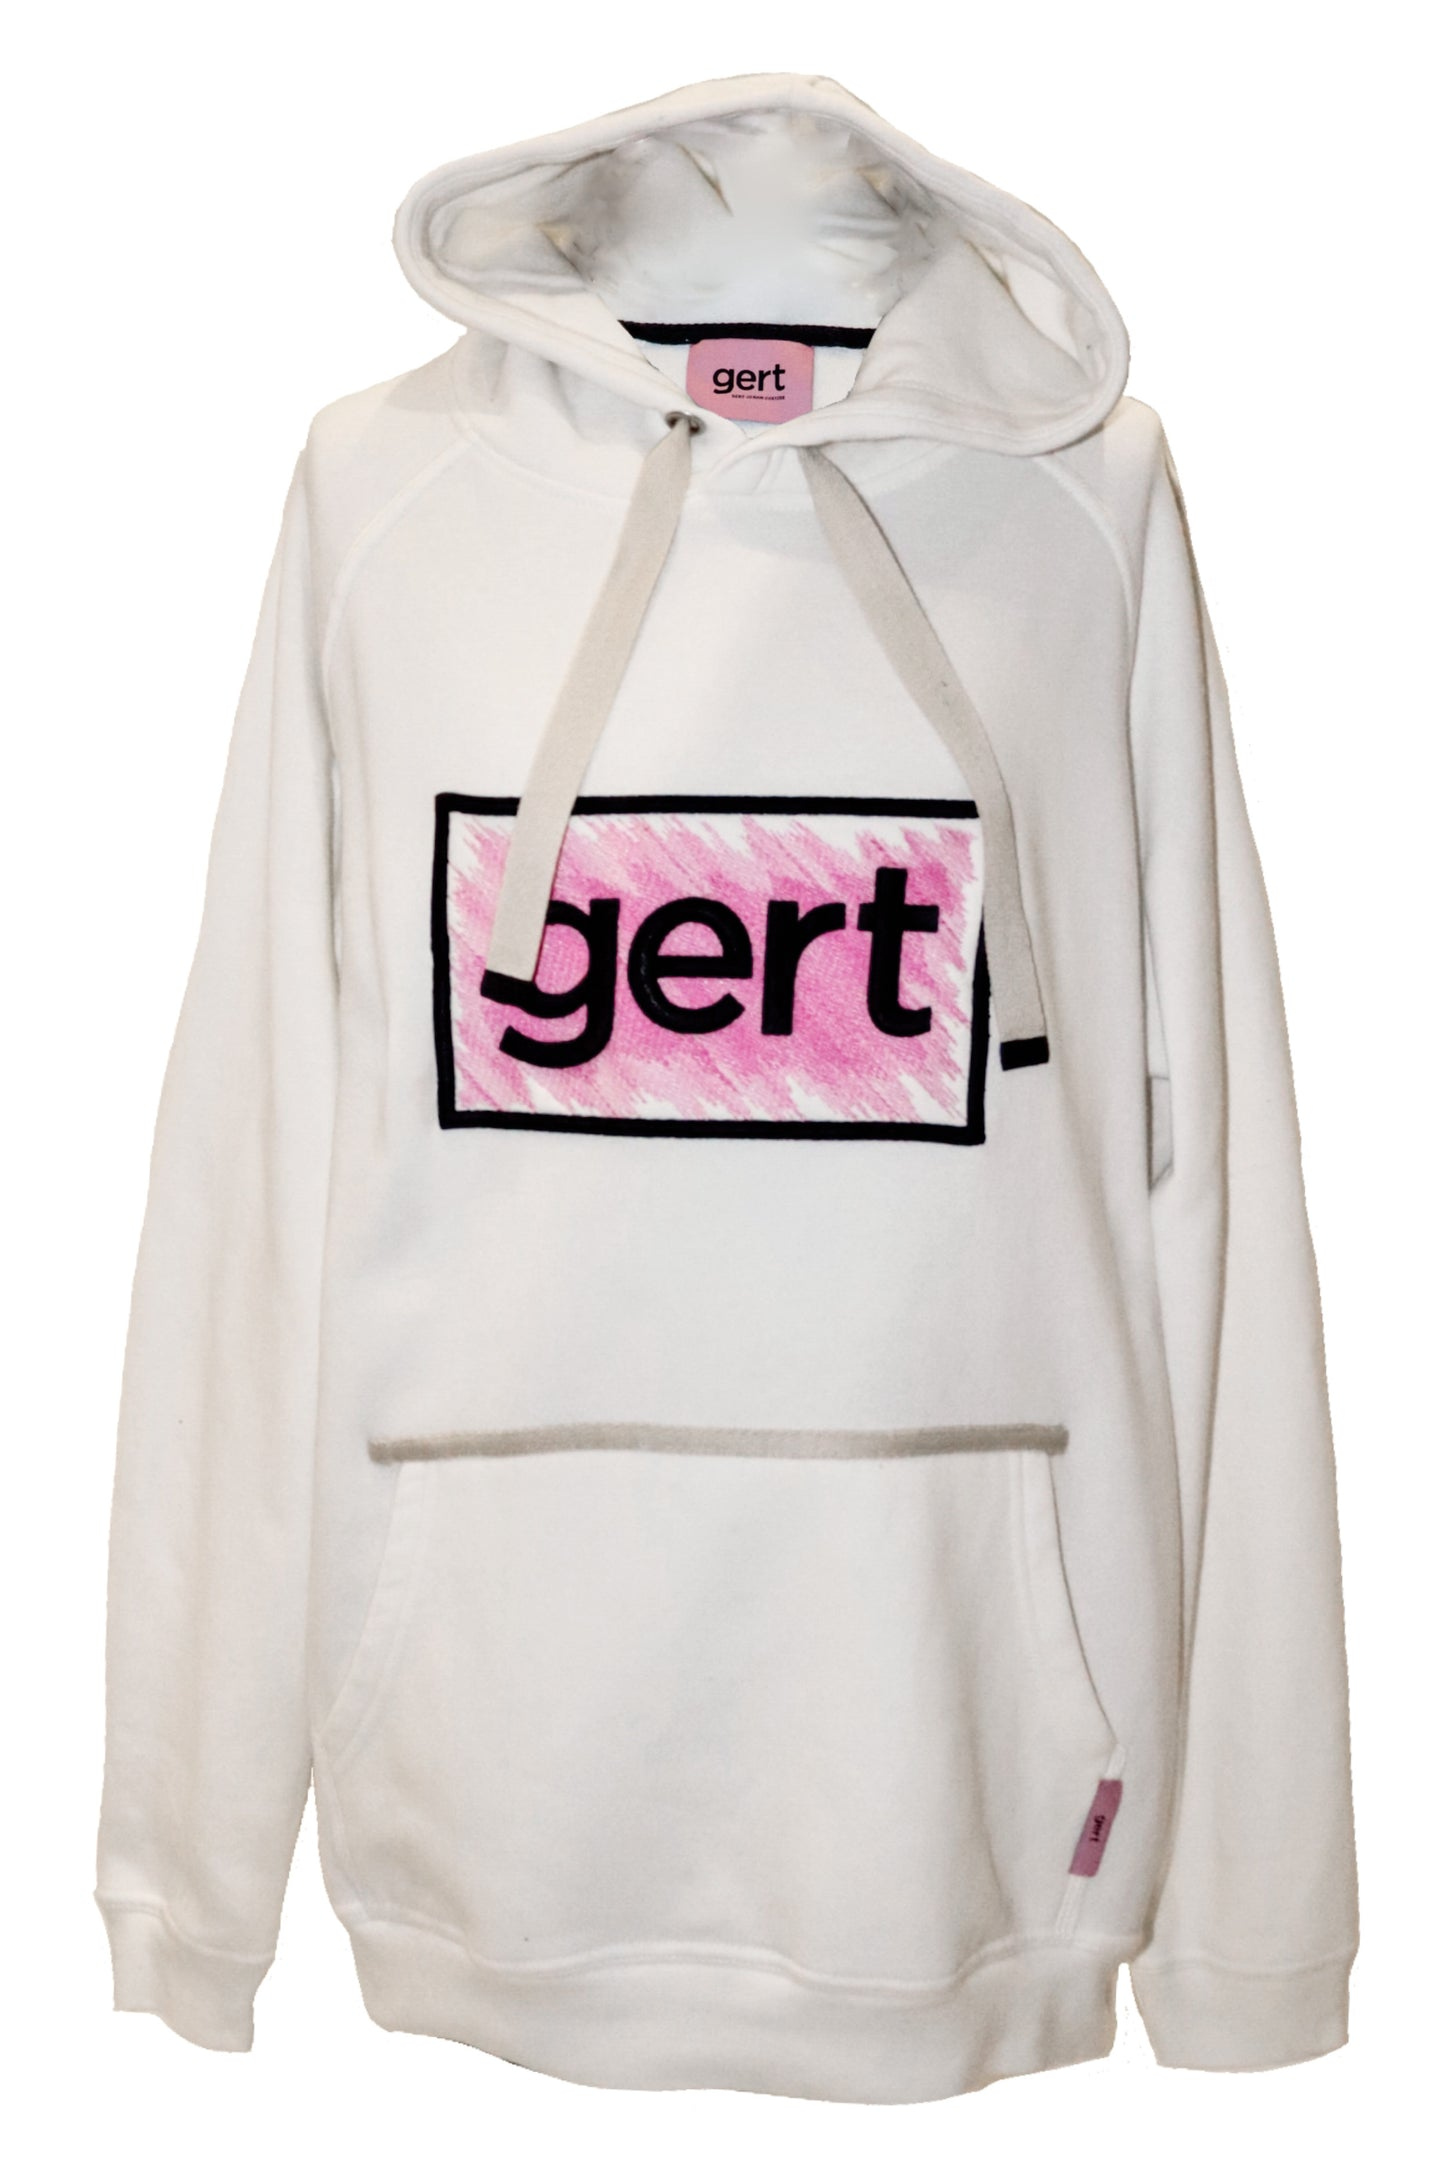 Embroidered gert hoodie (corset sold separately)